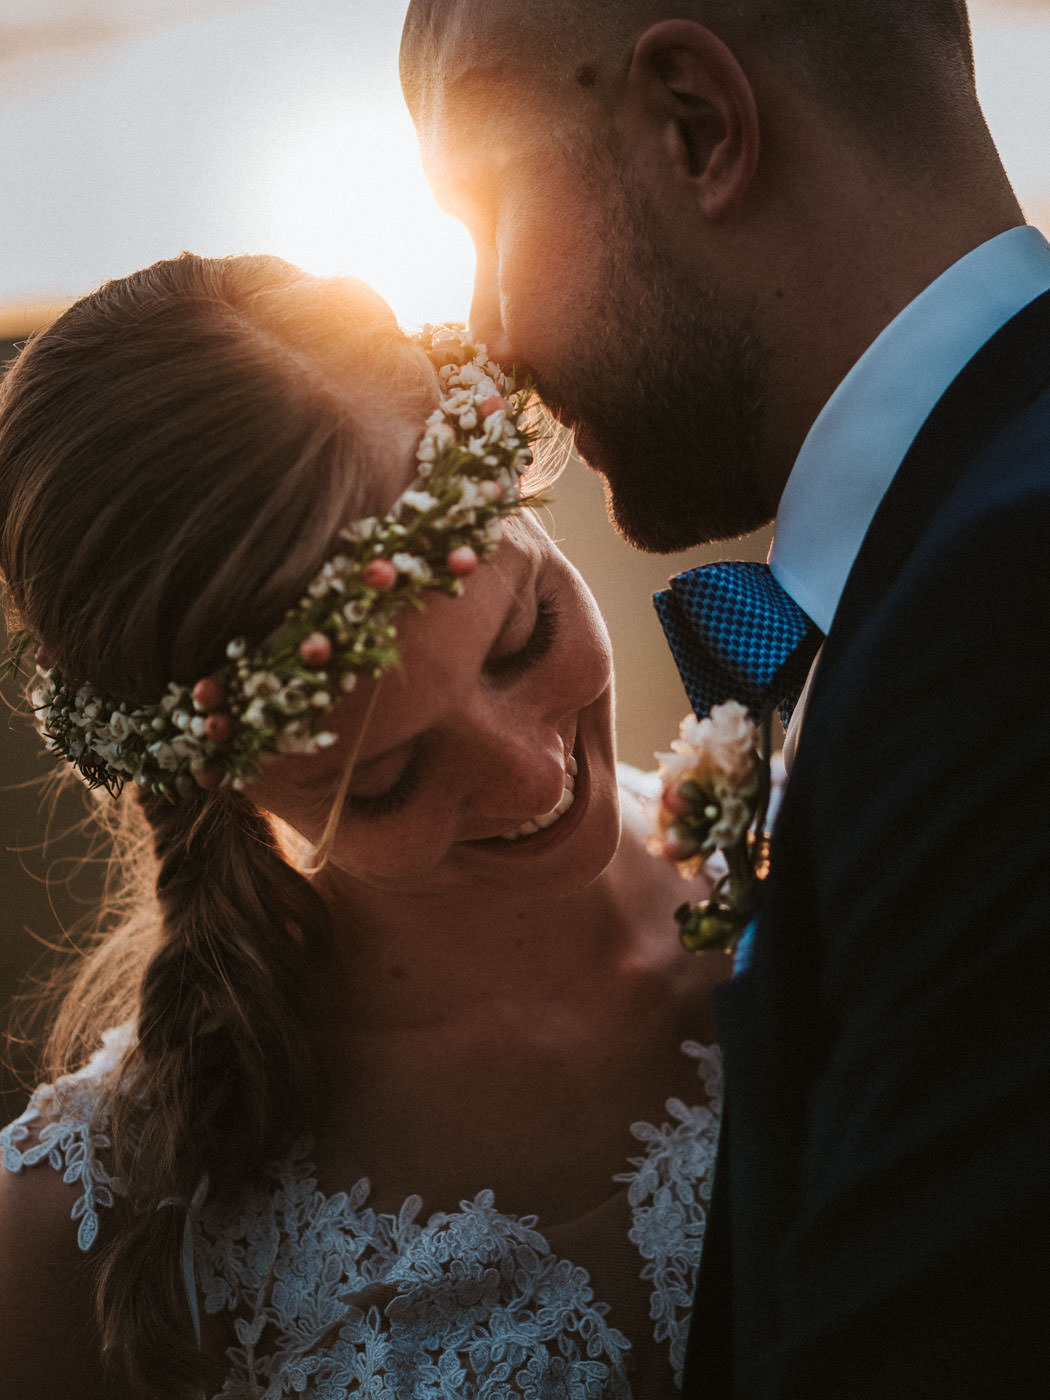 Wonderful evening light - portrait of the bridal couple